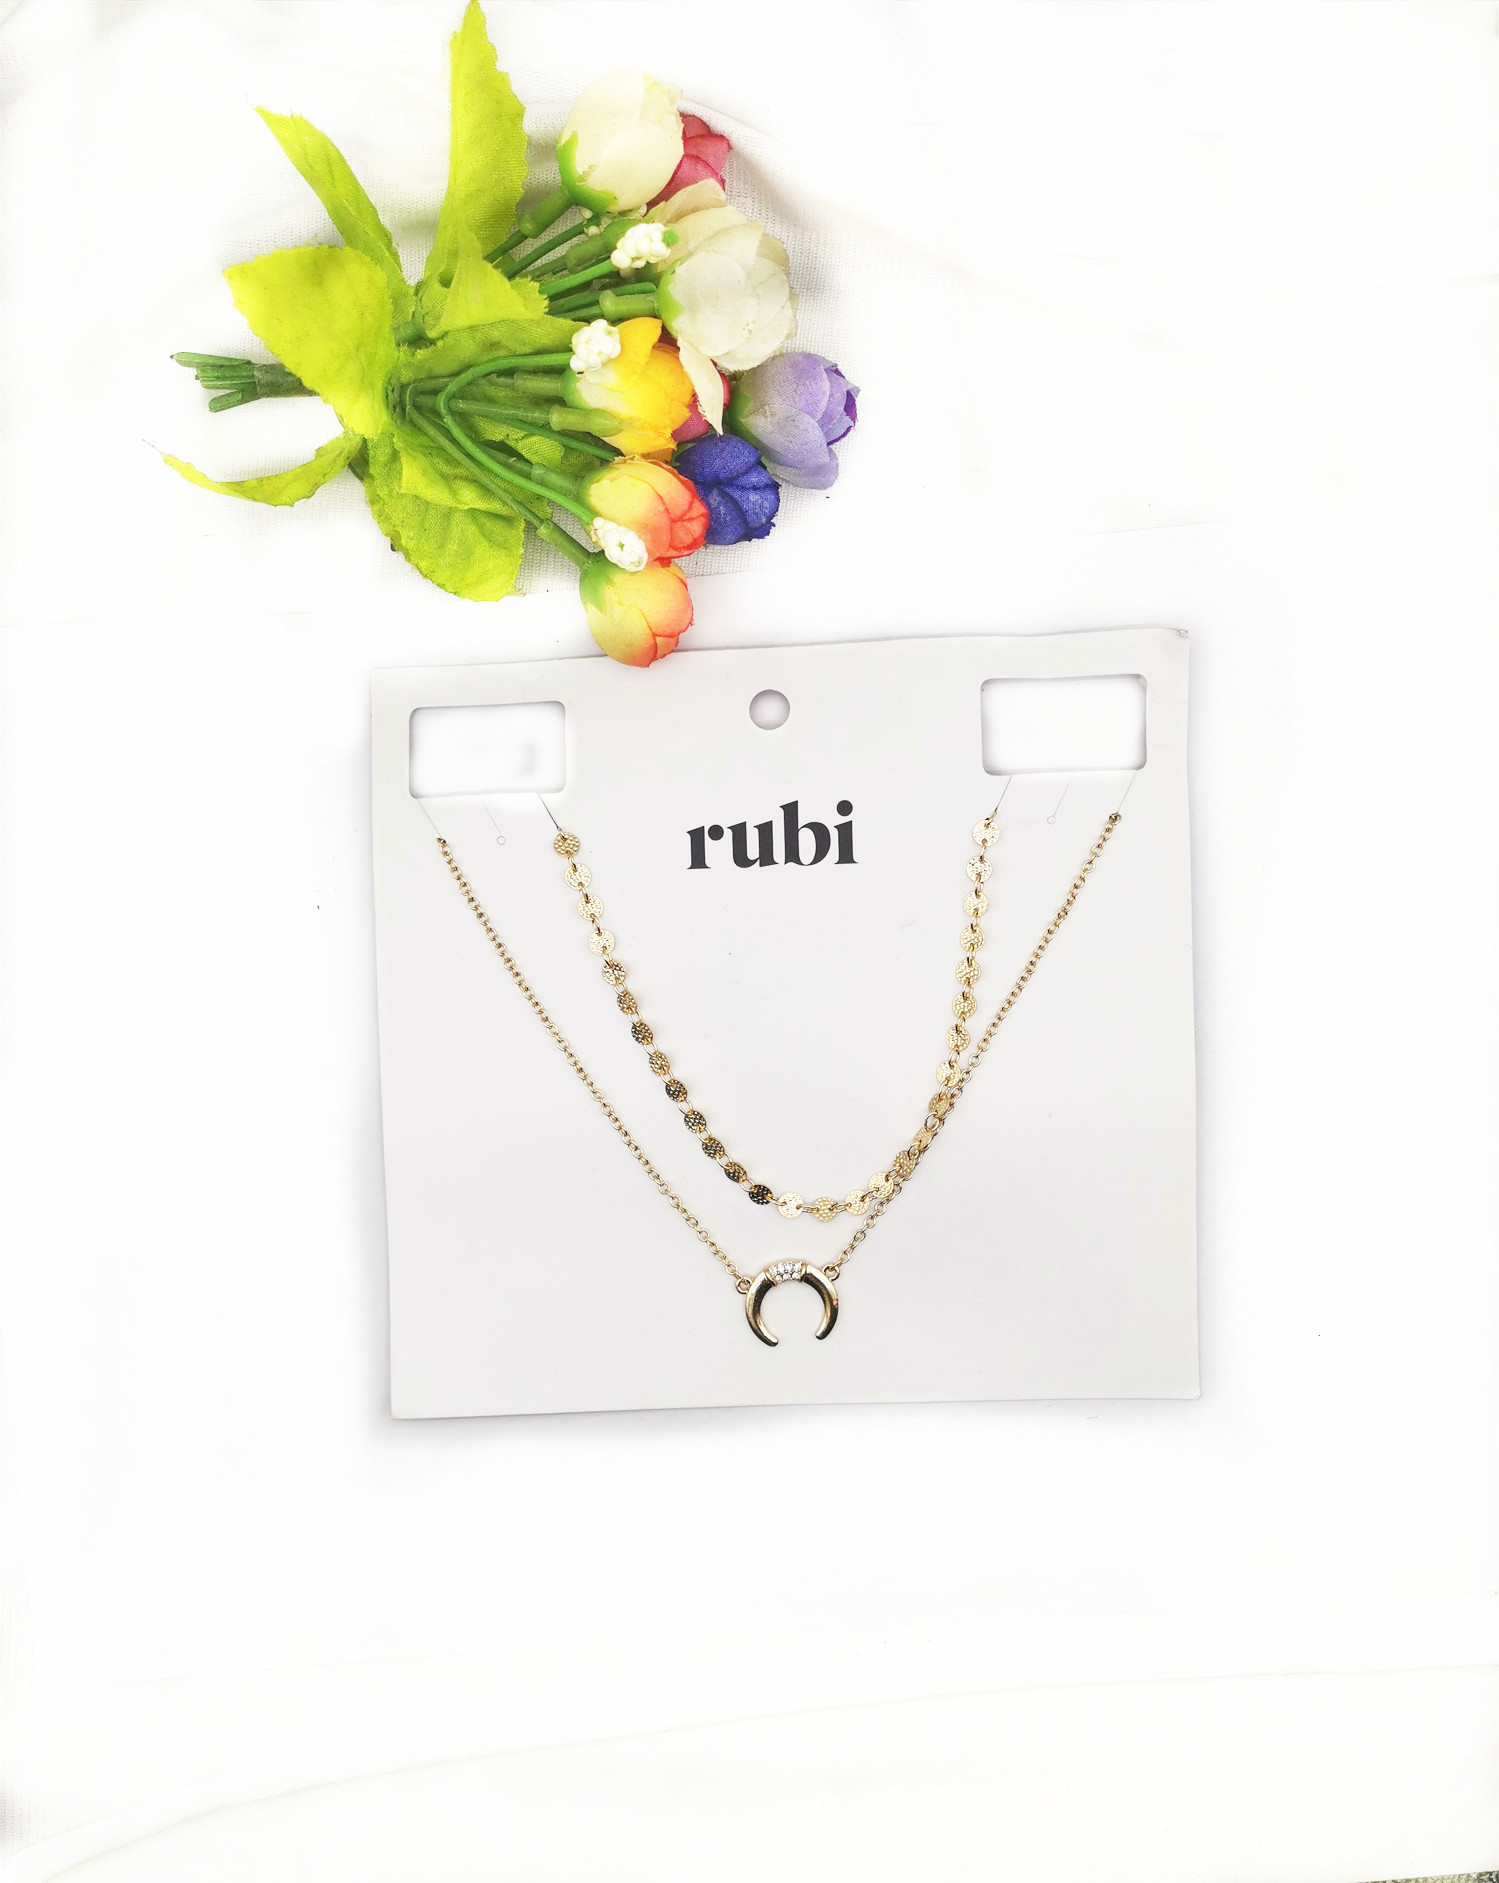 Qingdao jewelry European and American style simple gold plated temperament new womens Necklace